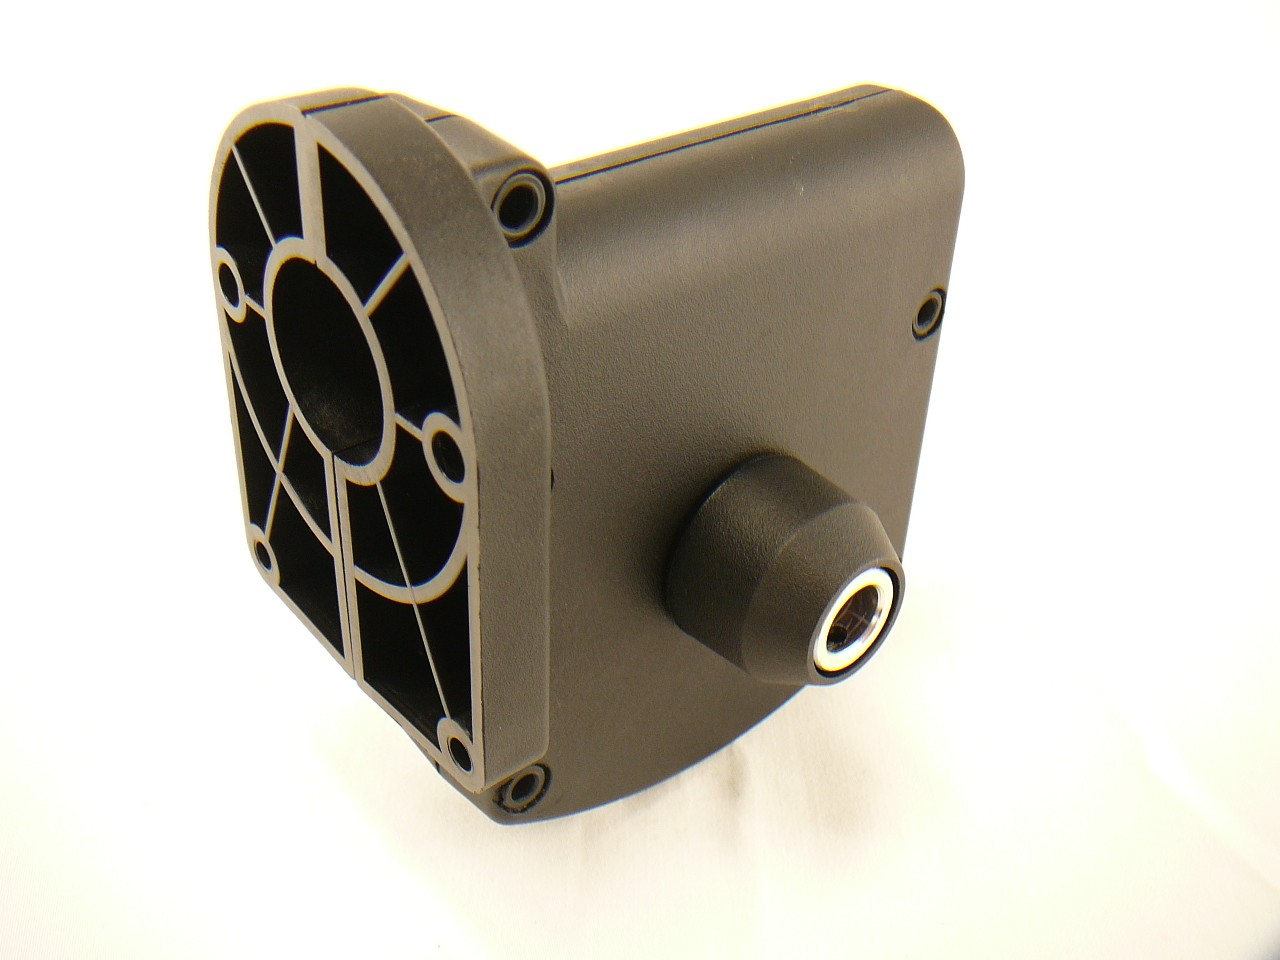 Replacement Gearbox for Powakaddy Freeway, Classic, or legend golf trolly,